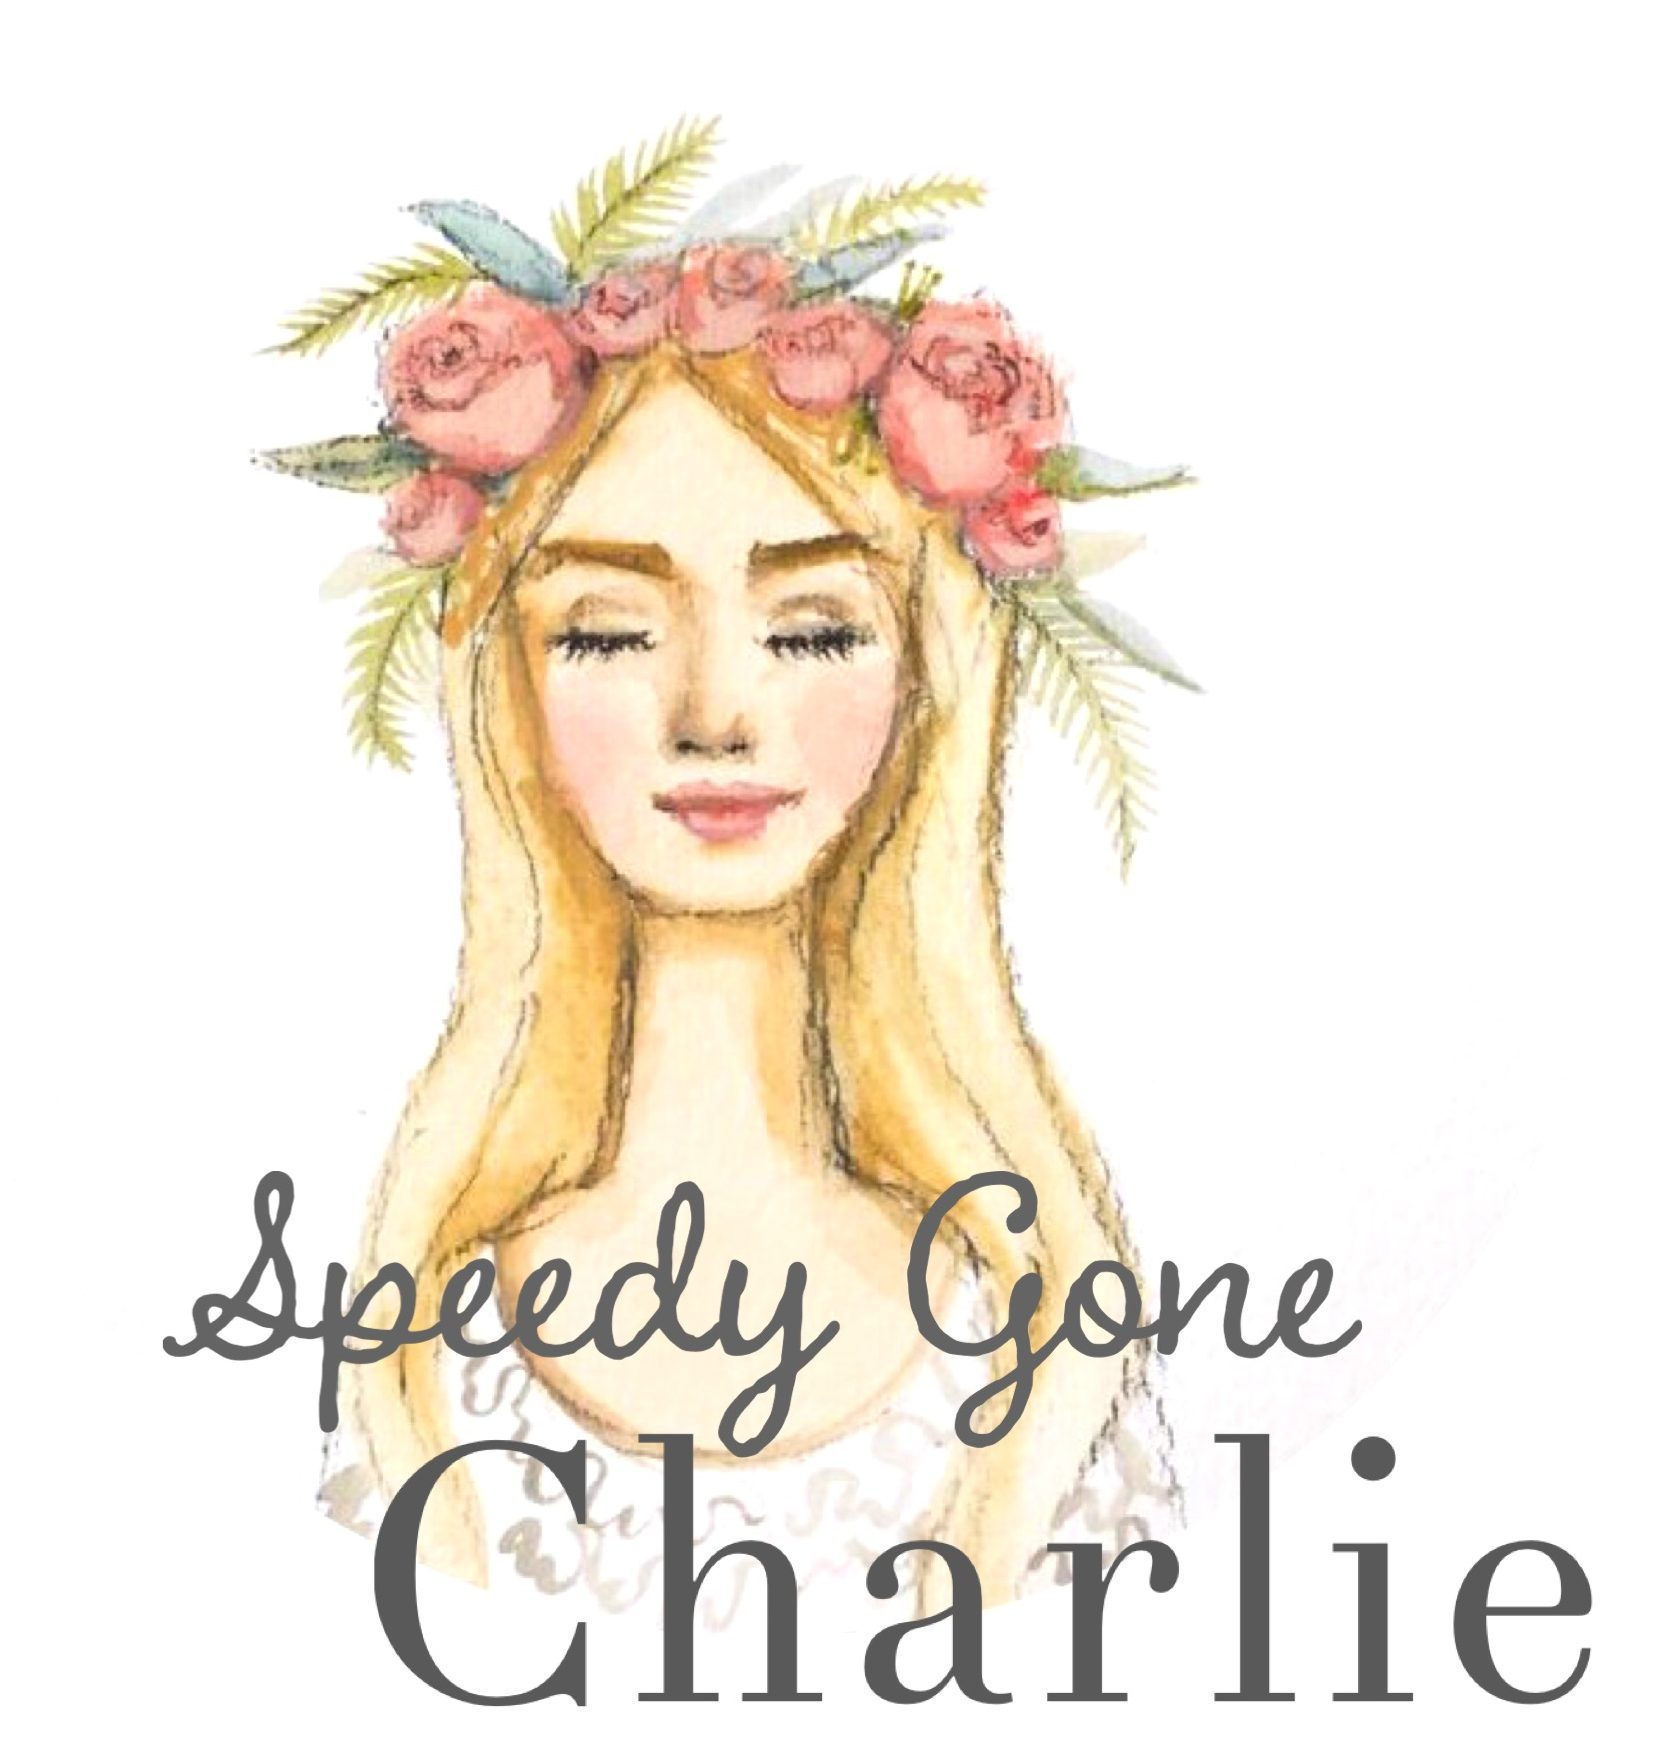 Speedy Gone Charlie